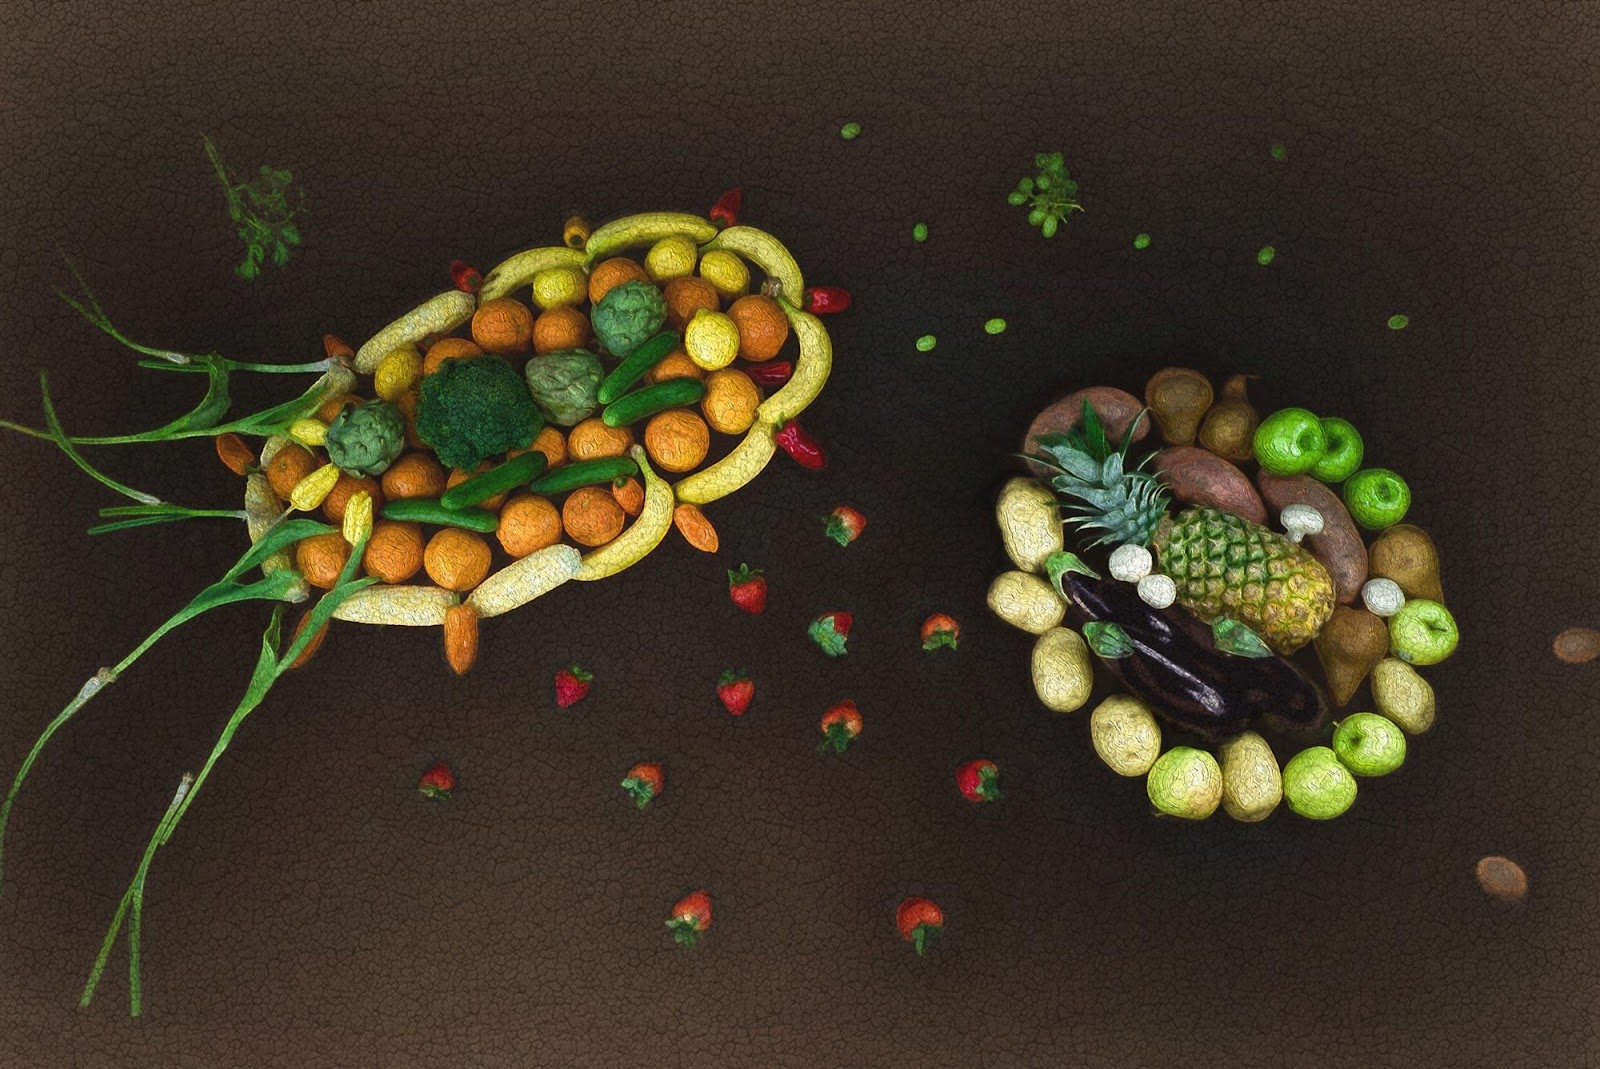 A photo of food shaped to look like microbes